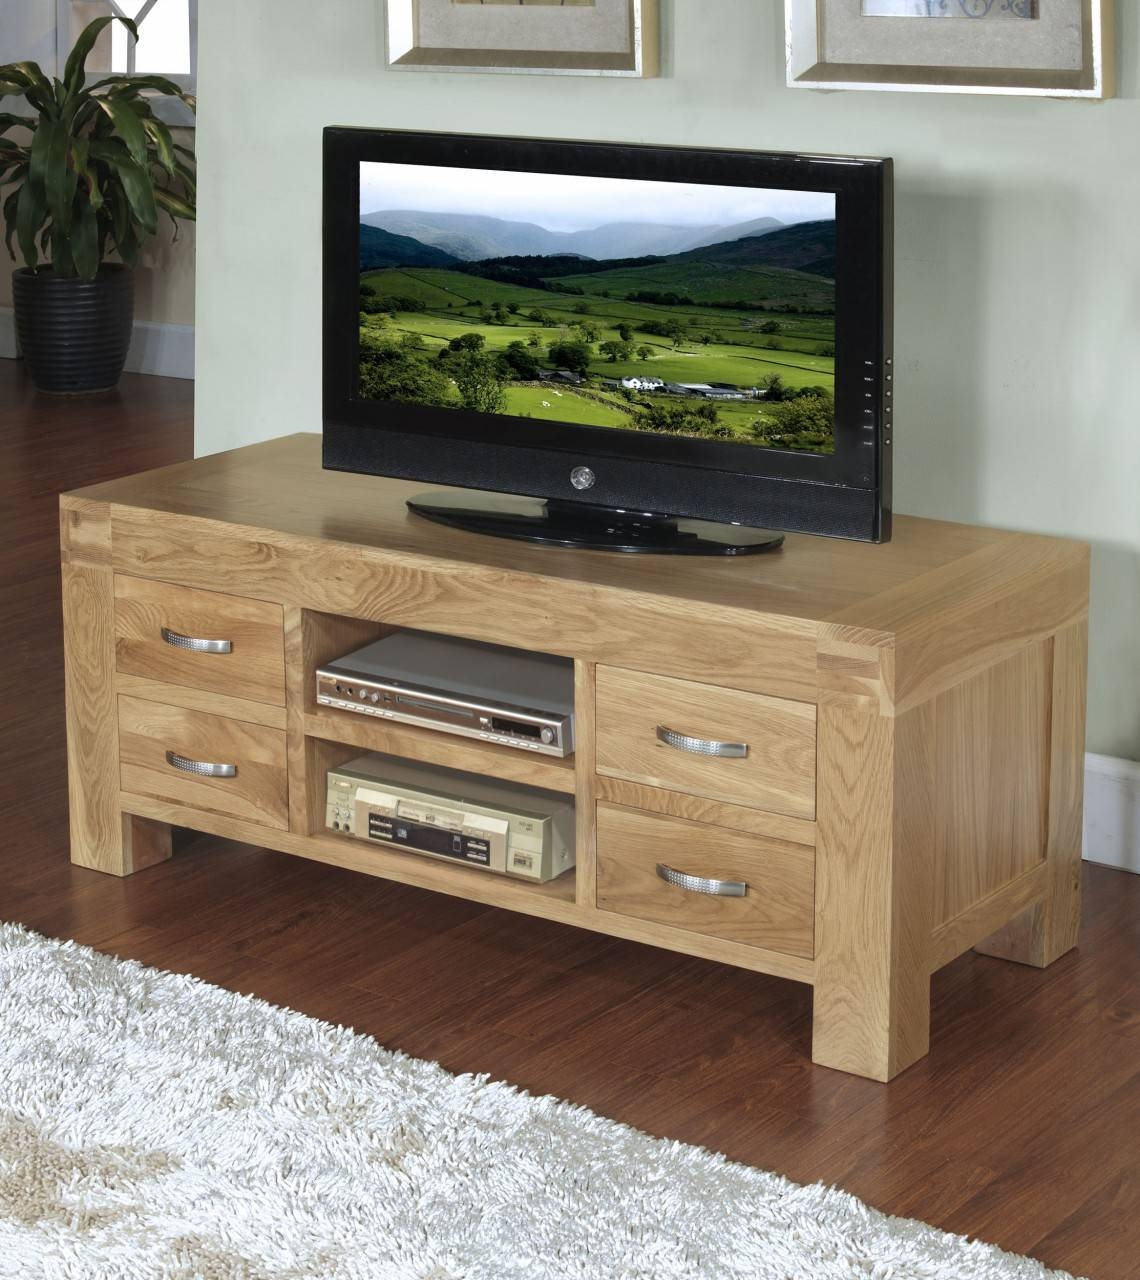 Rivermead Solid Oak Modern Furniture Widescreen Tv Cabinet Stand within Solid Oak Tv Cabinets (Image 12 of 15)